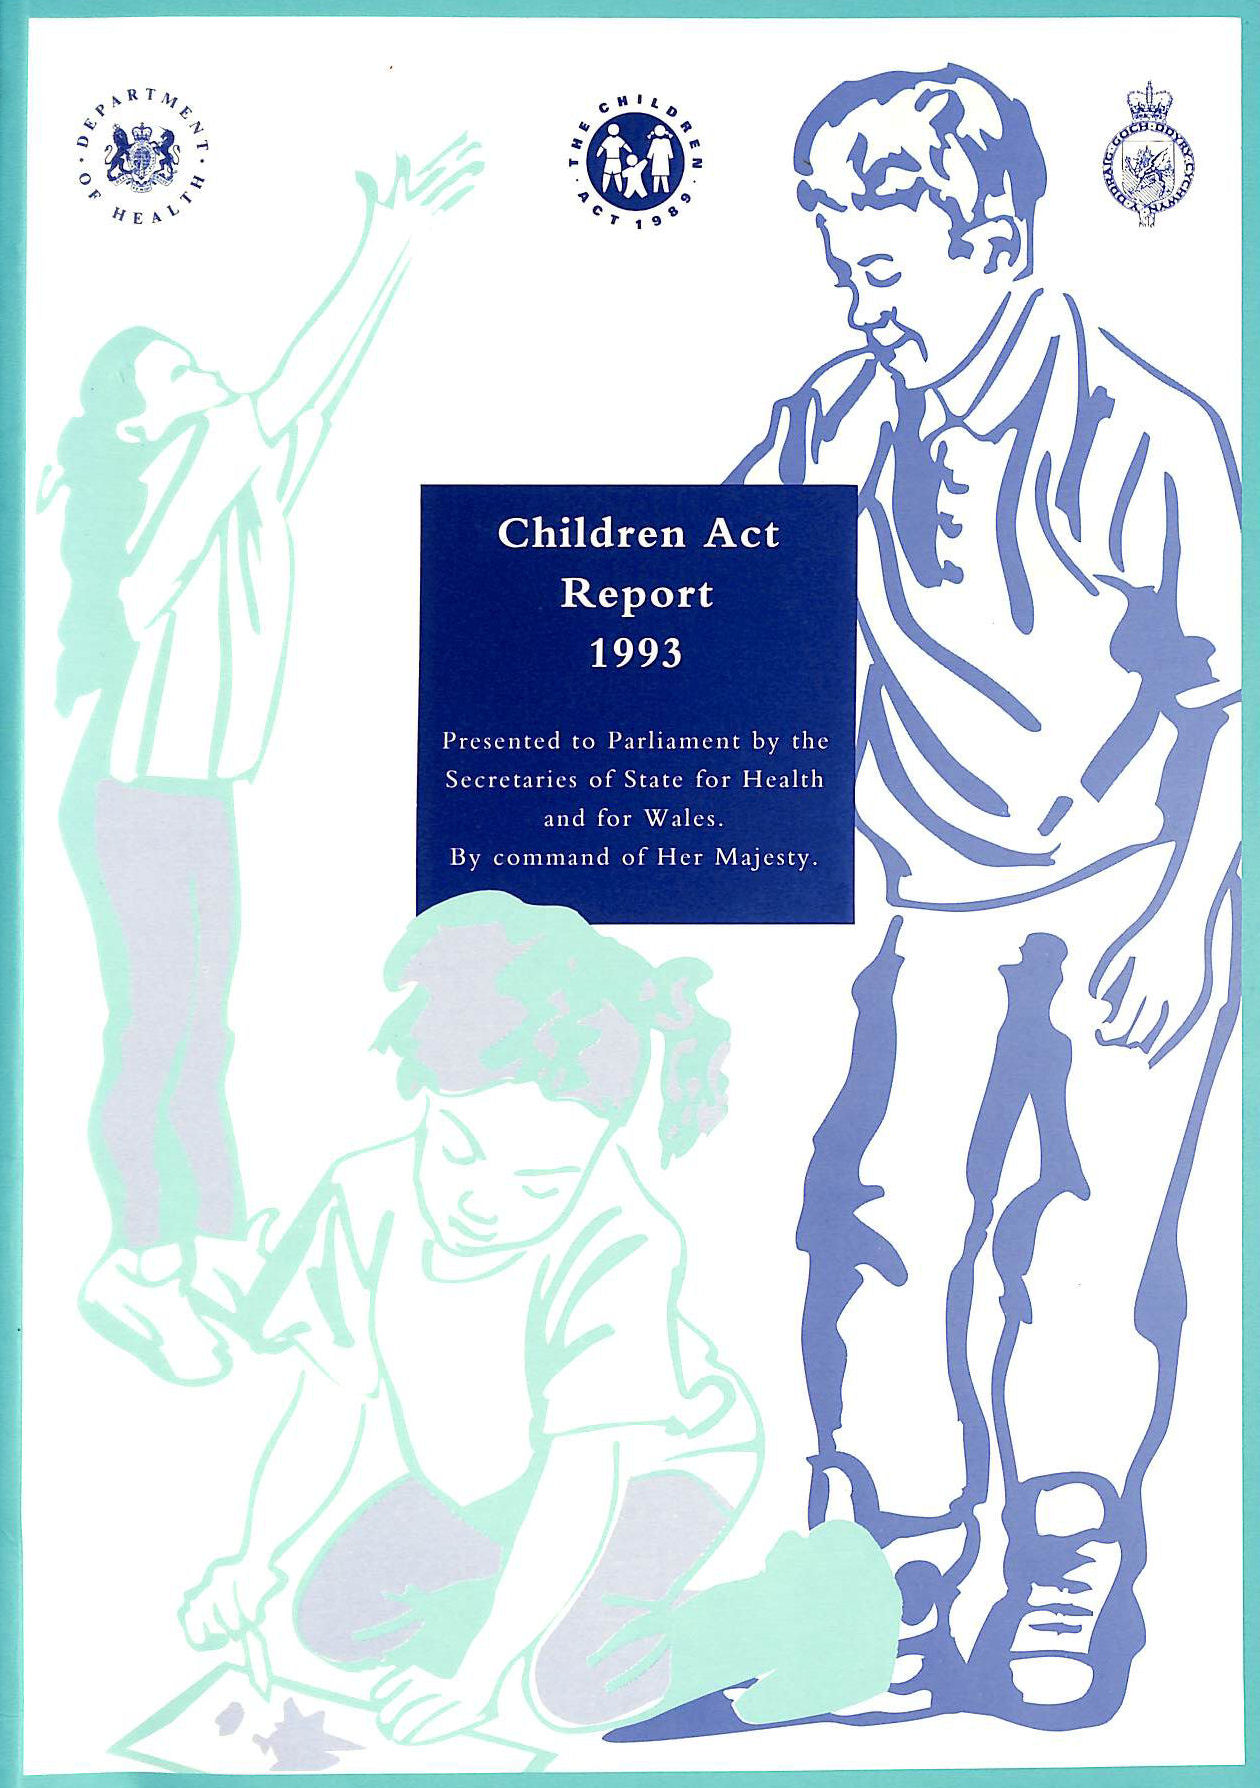 Image for Children Act, 1993: A Report by the Secretaries of State for Health and for Wales on the Children Act, 1989, in Pursuance of Their Duties Under Section 83(6) of the Act (Command Paper)